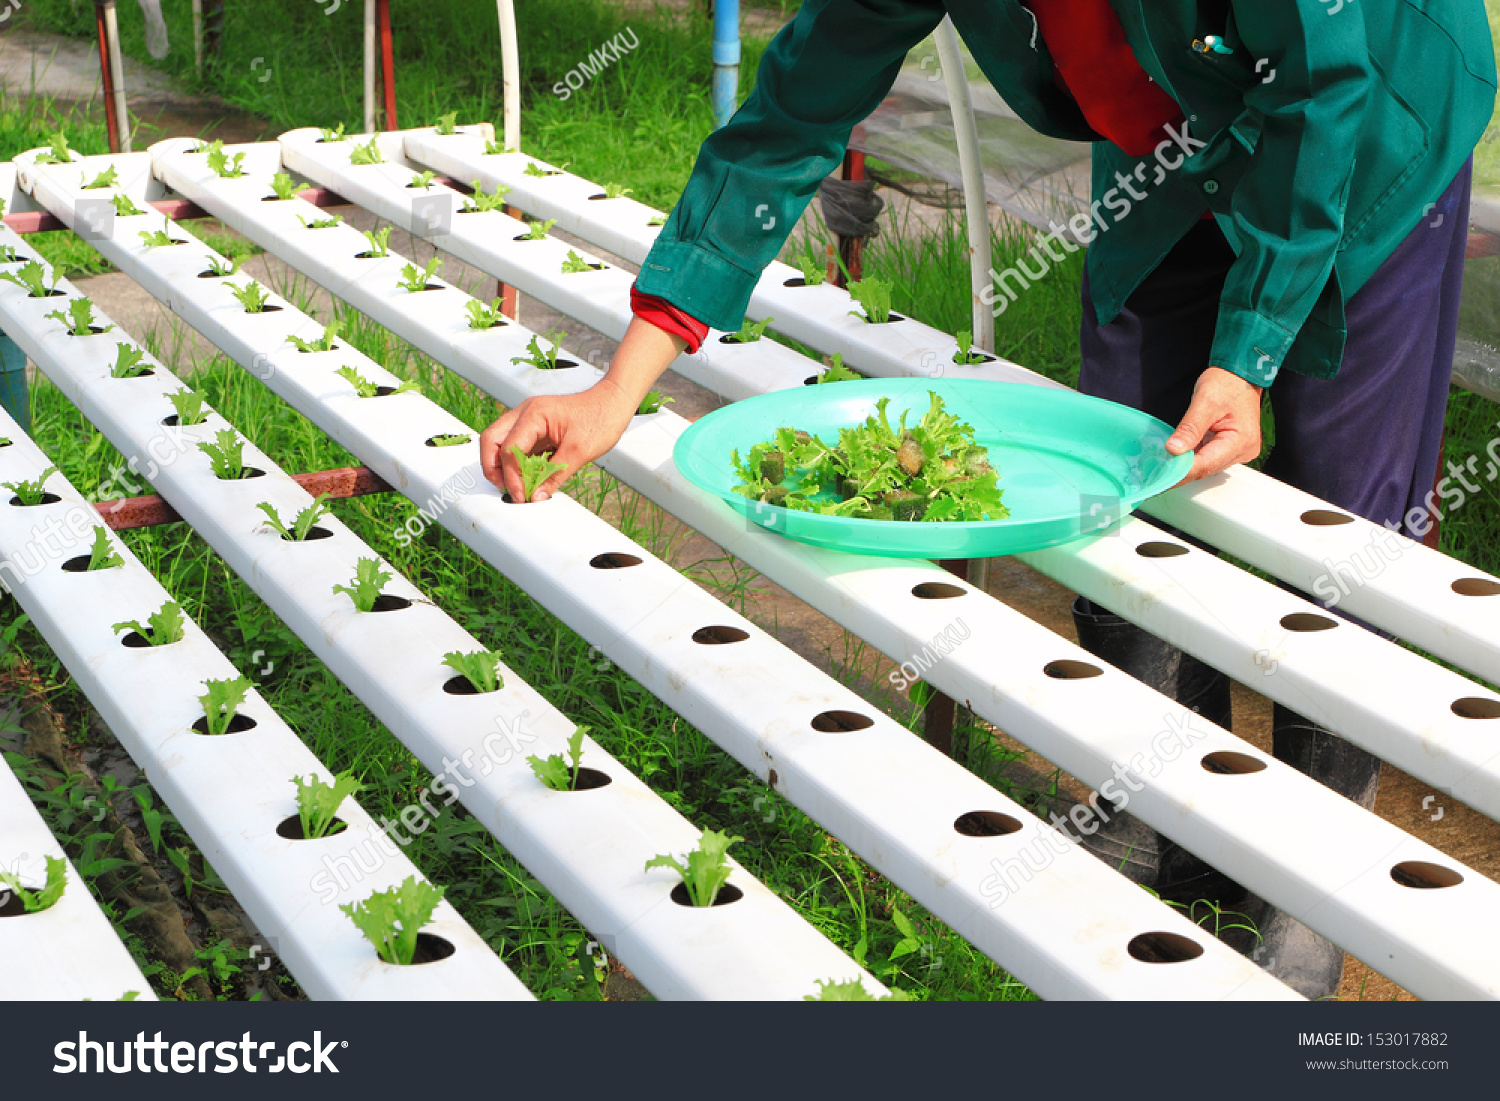 hydroponics method of growing plants using mineral nutrient solutions in water without soil. Black Bedroom Furniture Sets. Home Design Ideas